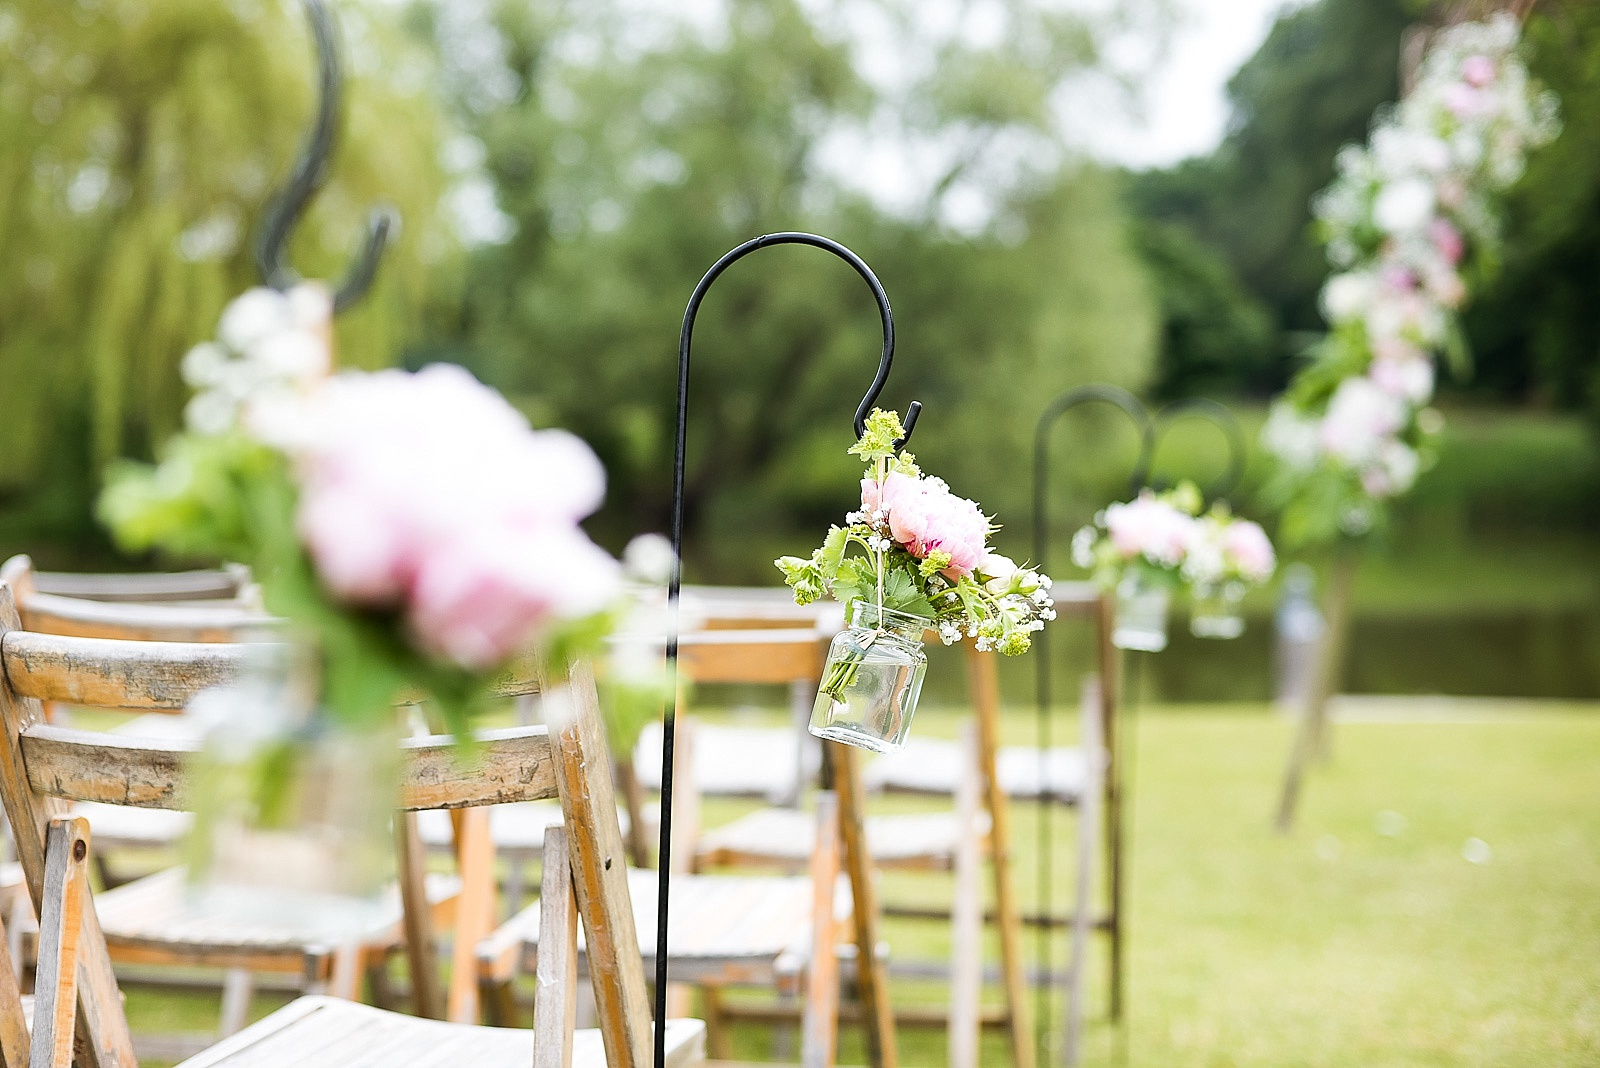 Creative wedding photography rose chair decoration